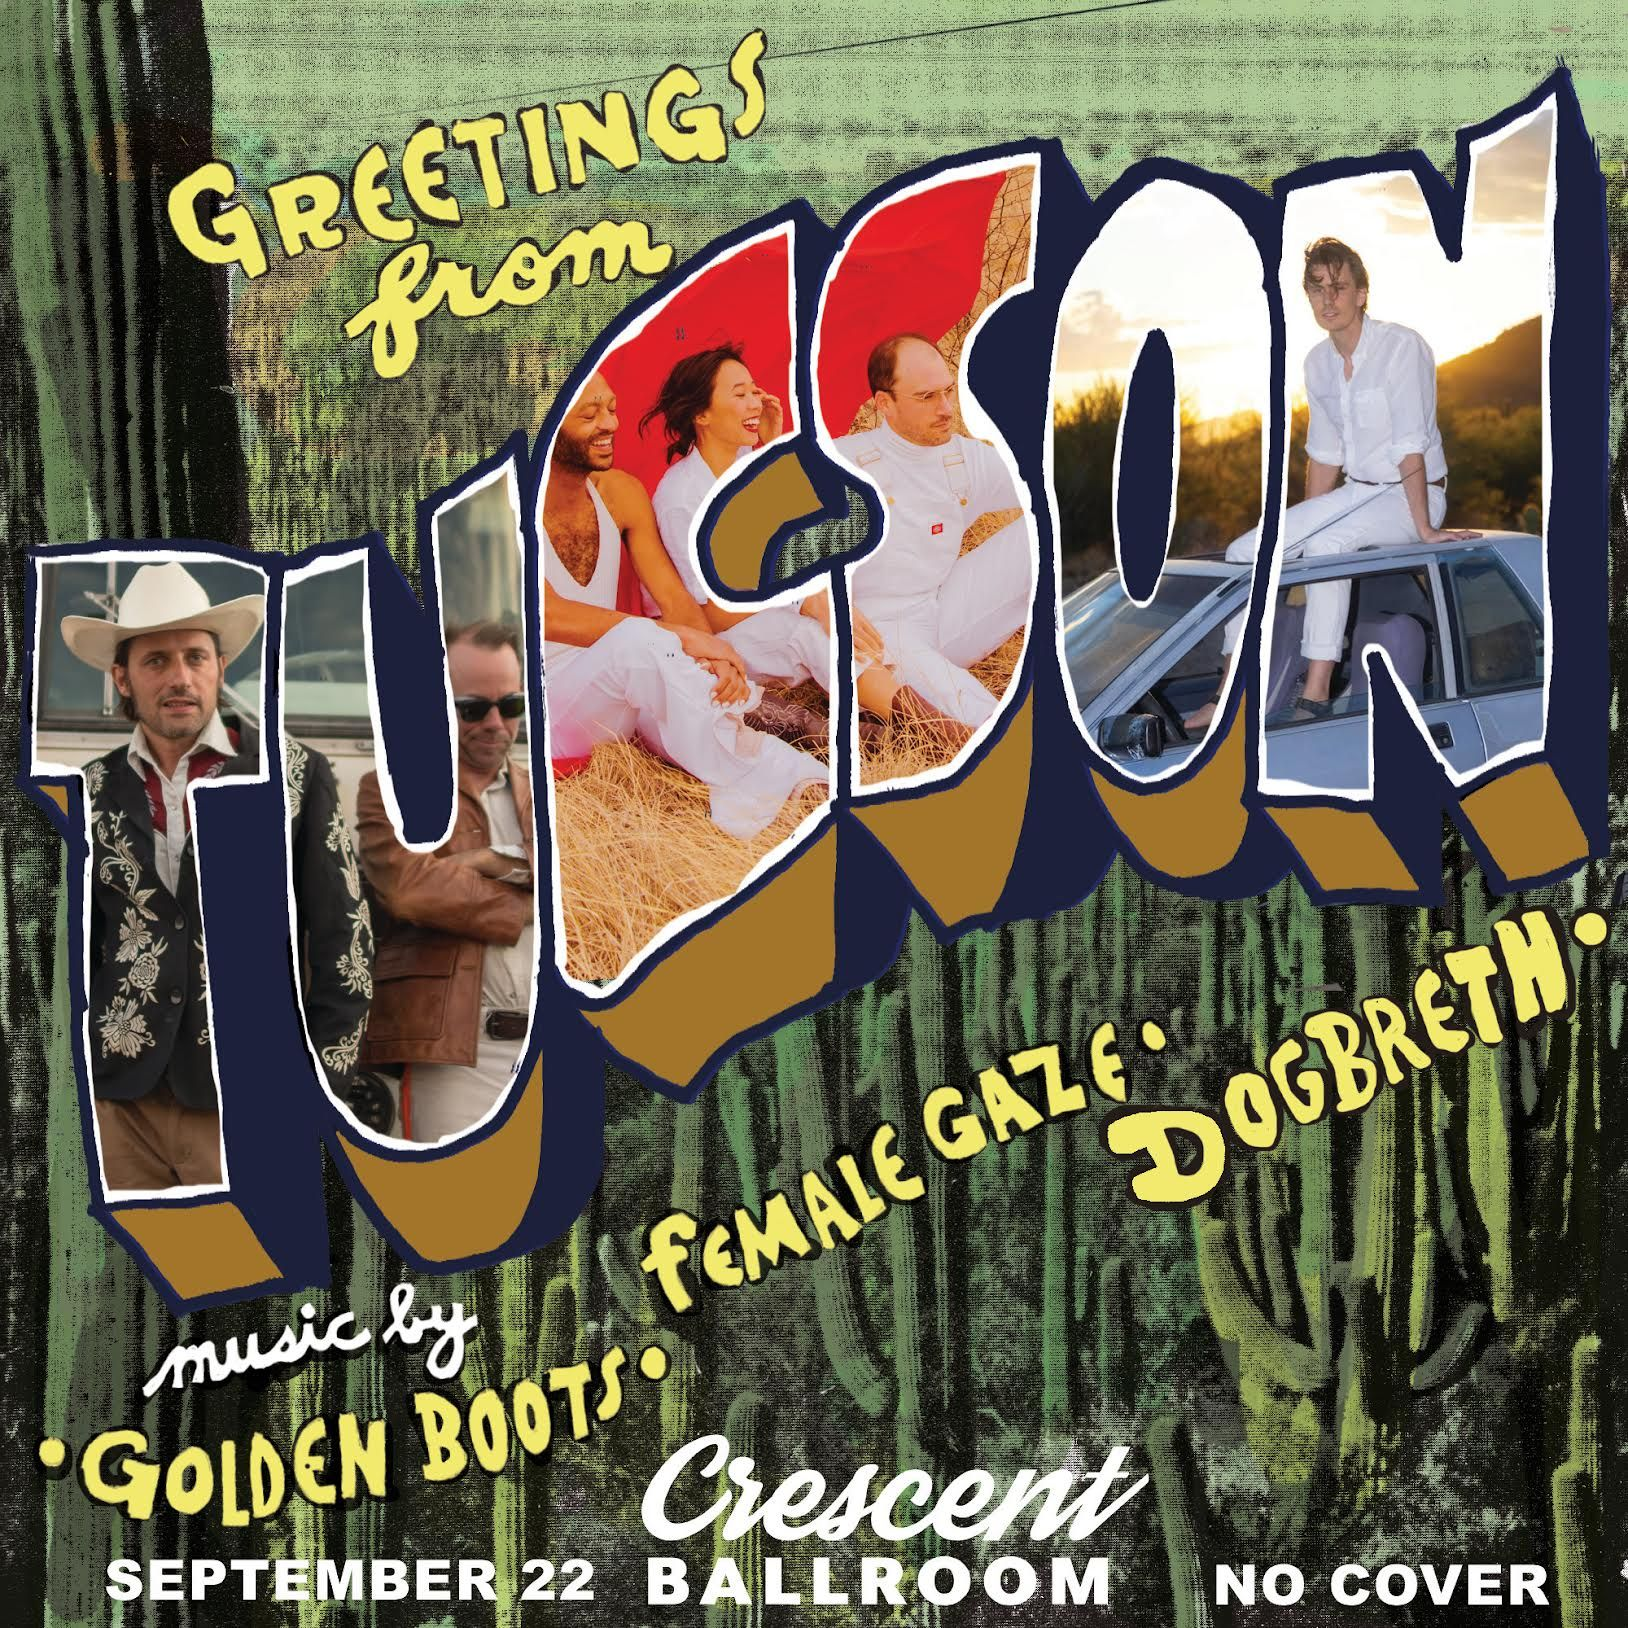 Greetings From Tucson: Golden Boots, Female Gaze, Dogbreth: